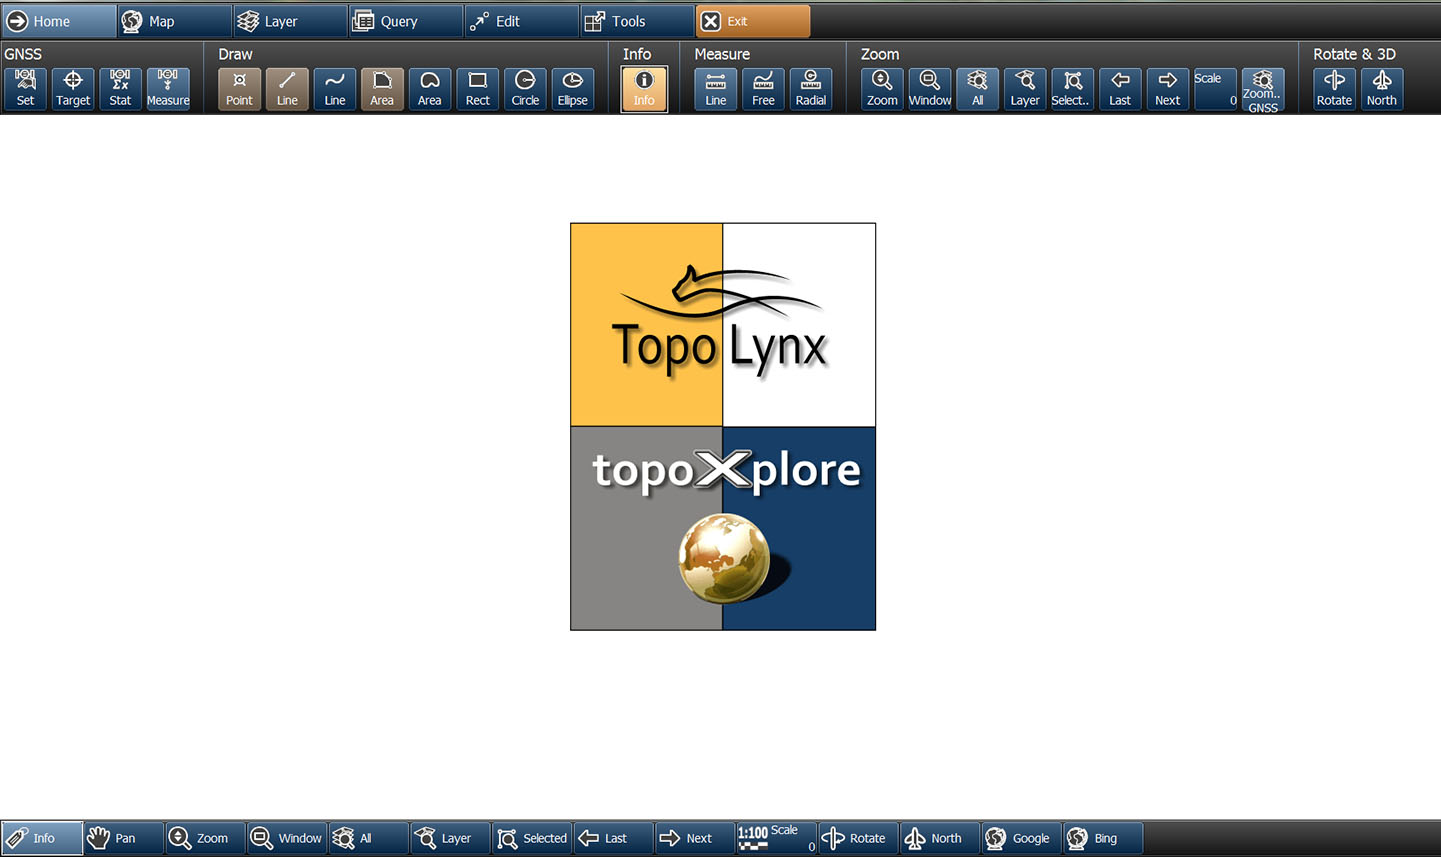 Main window of topoXplore and the splash screen